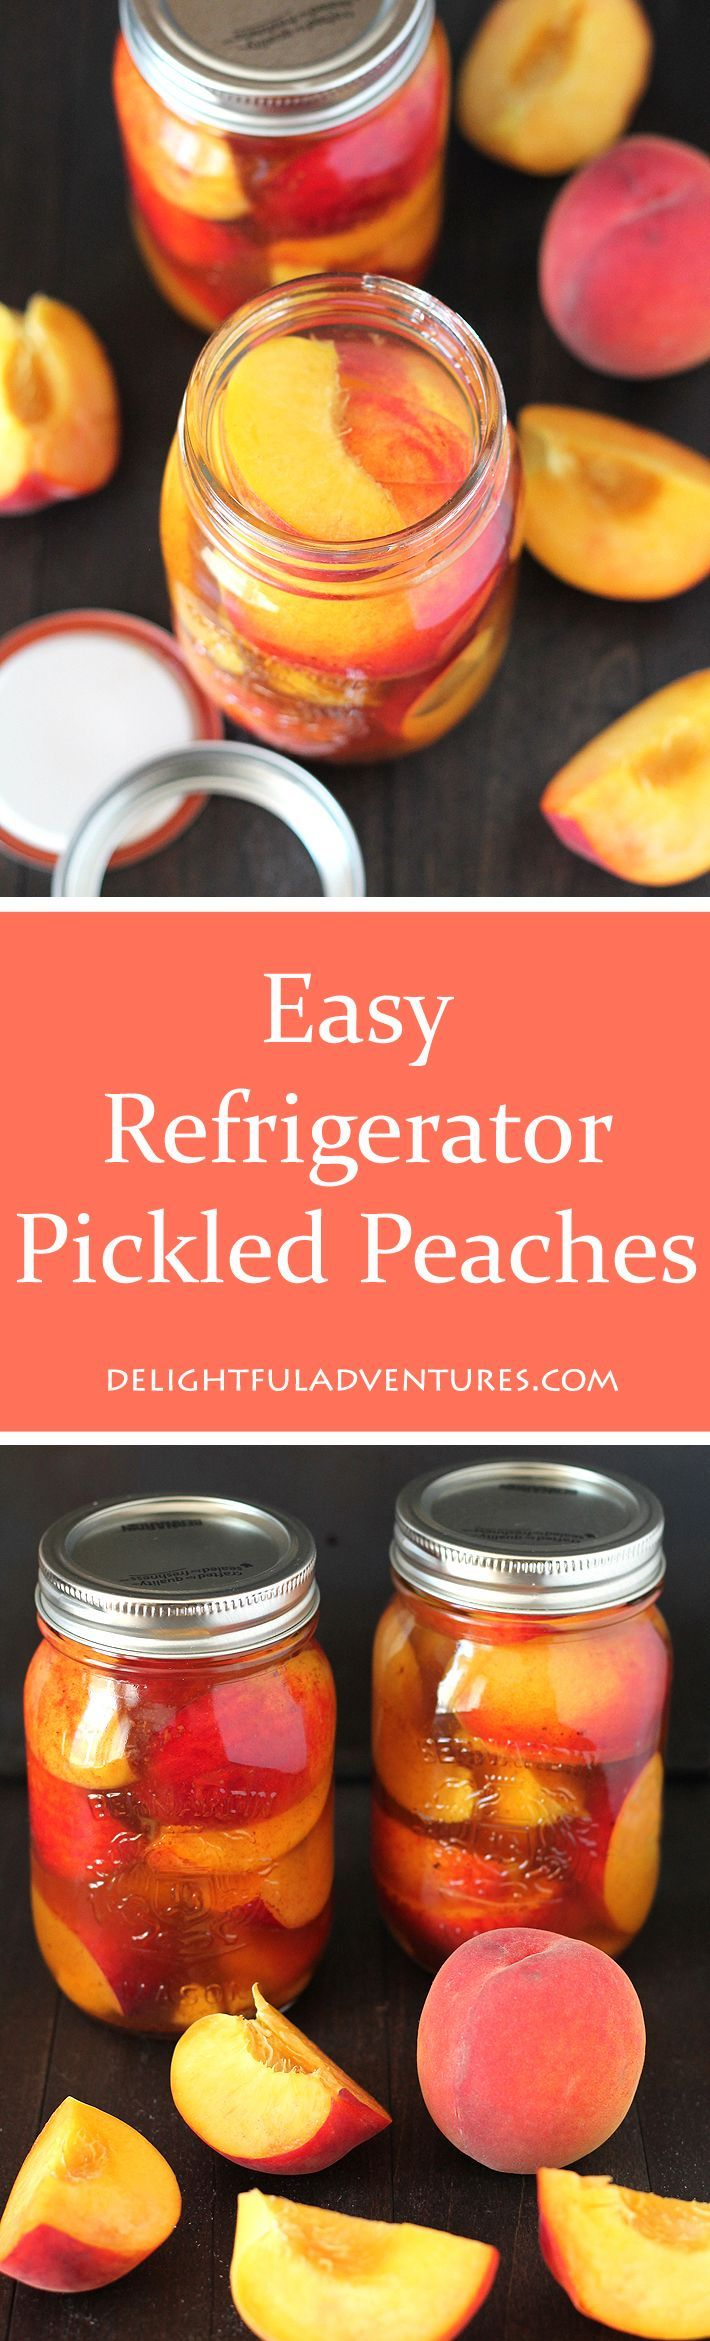 Prolong summer peach season by making this recipe for Easy Refrigerator Pickled…